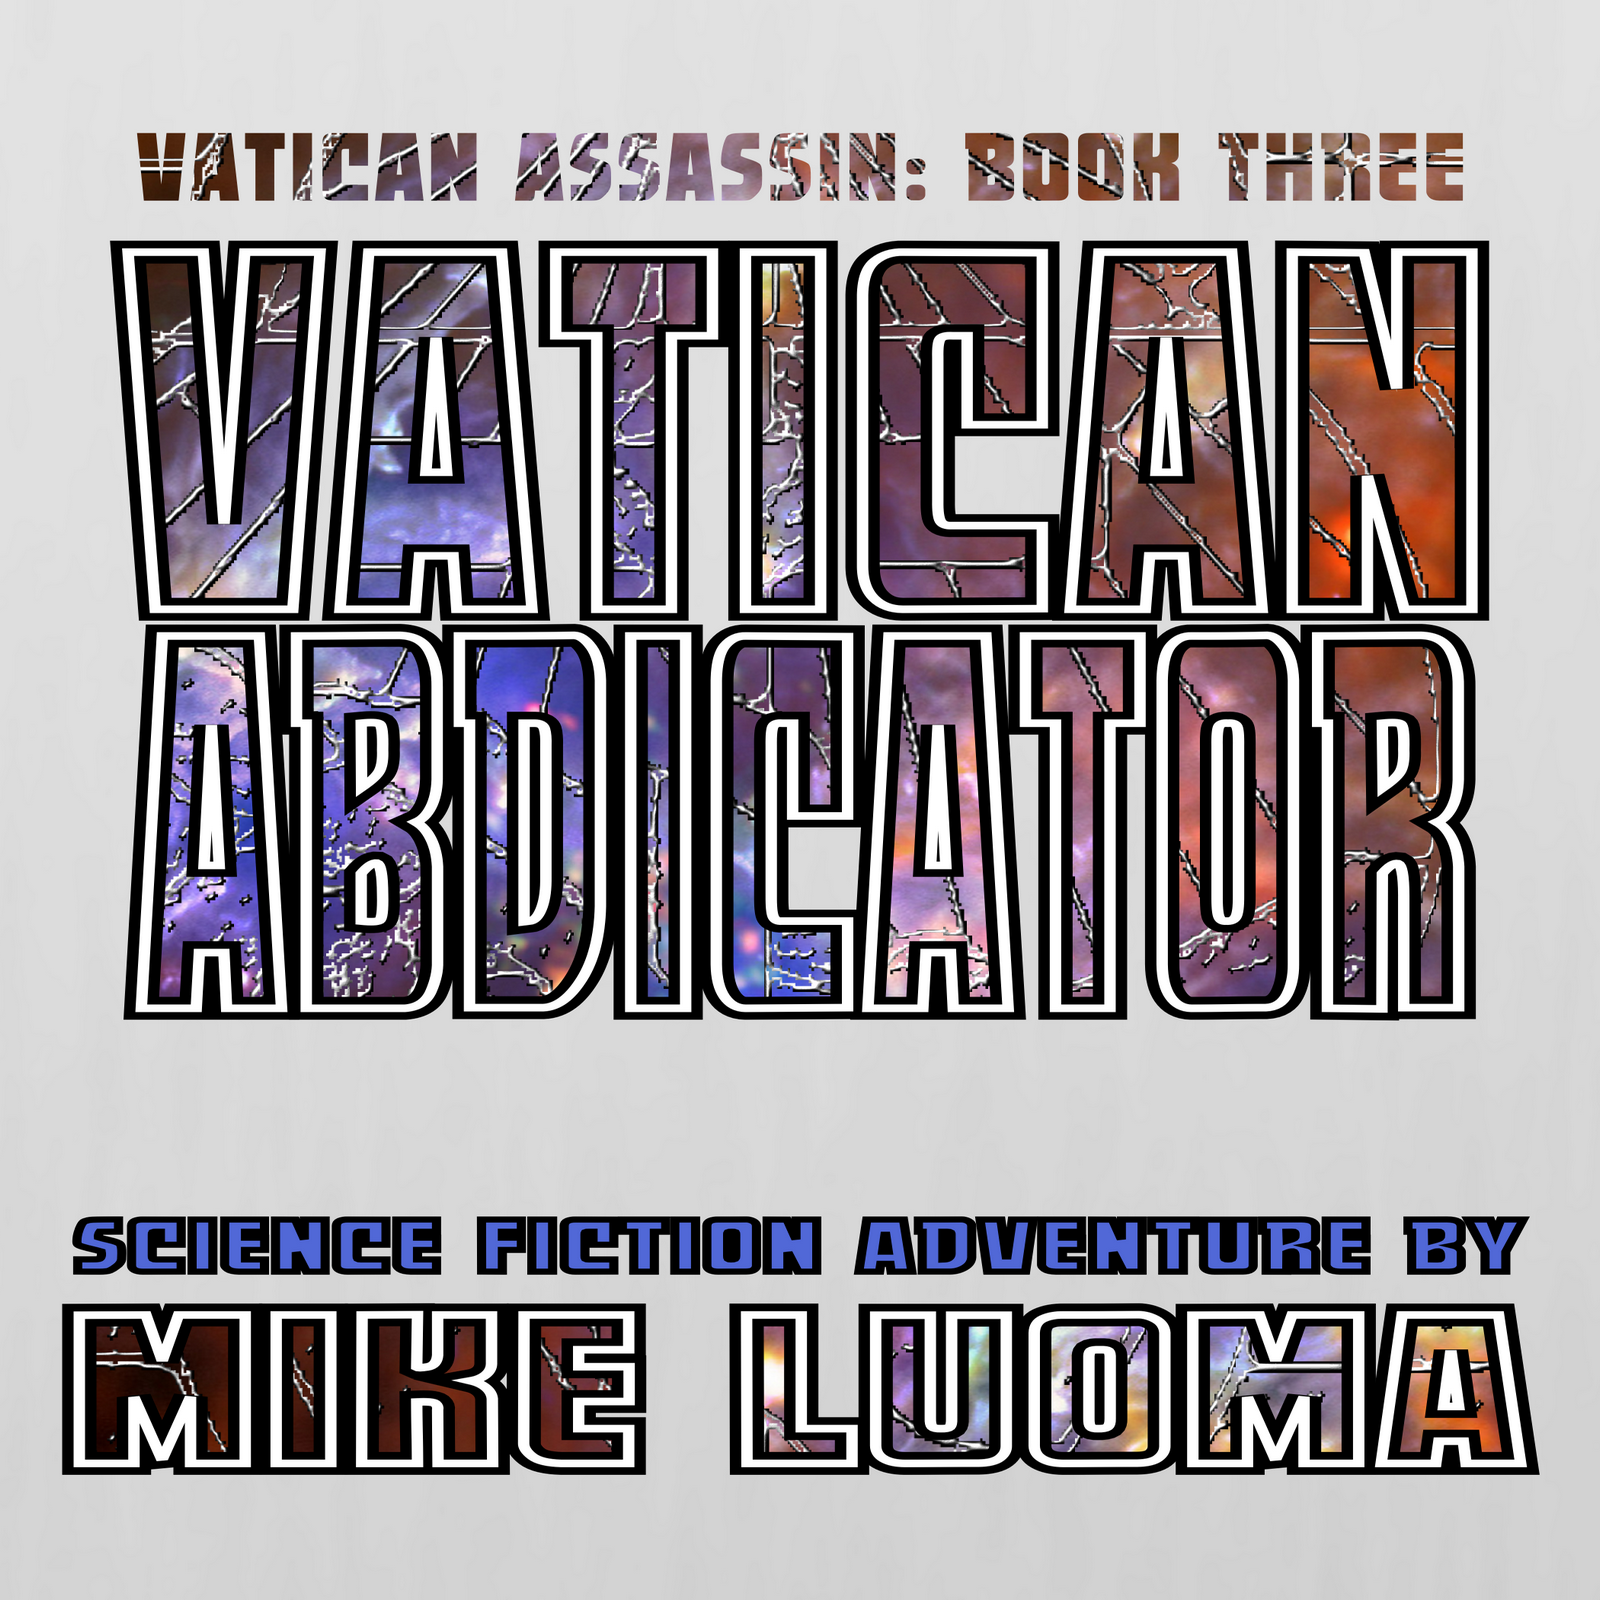 Chapter 18 - Vatican Abdicator